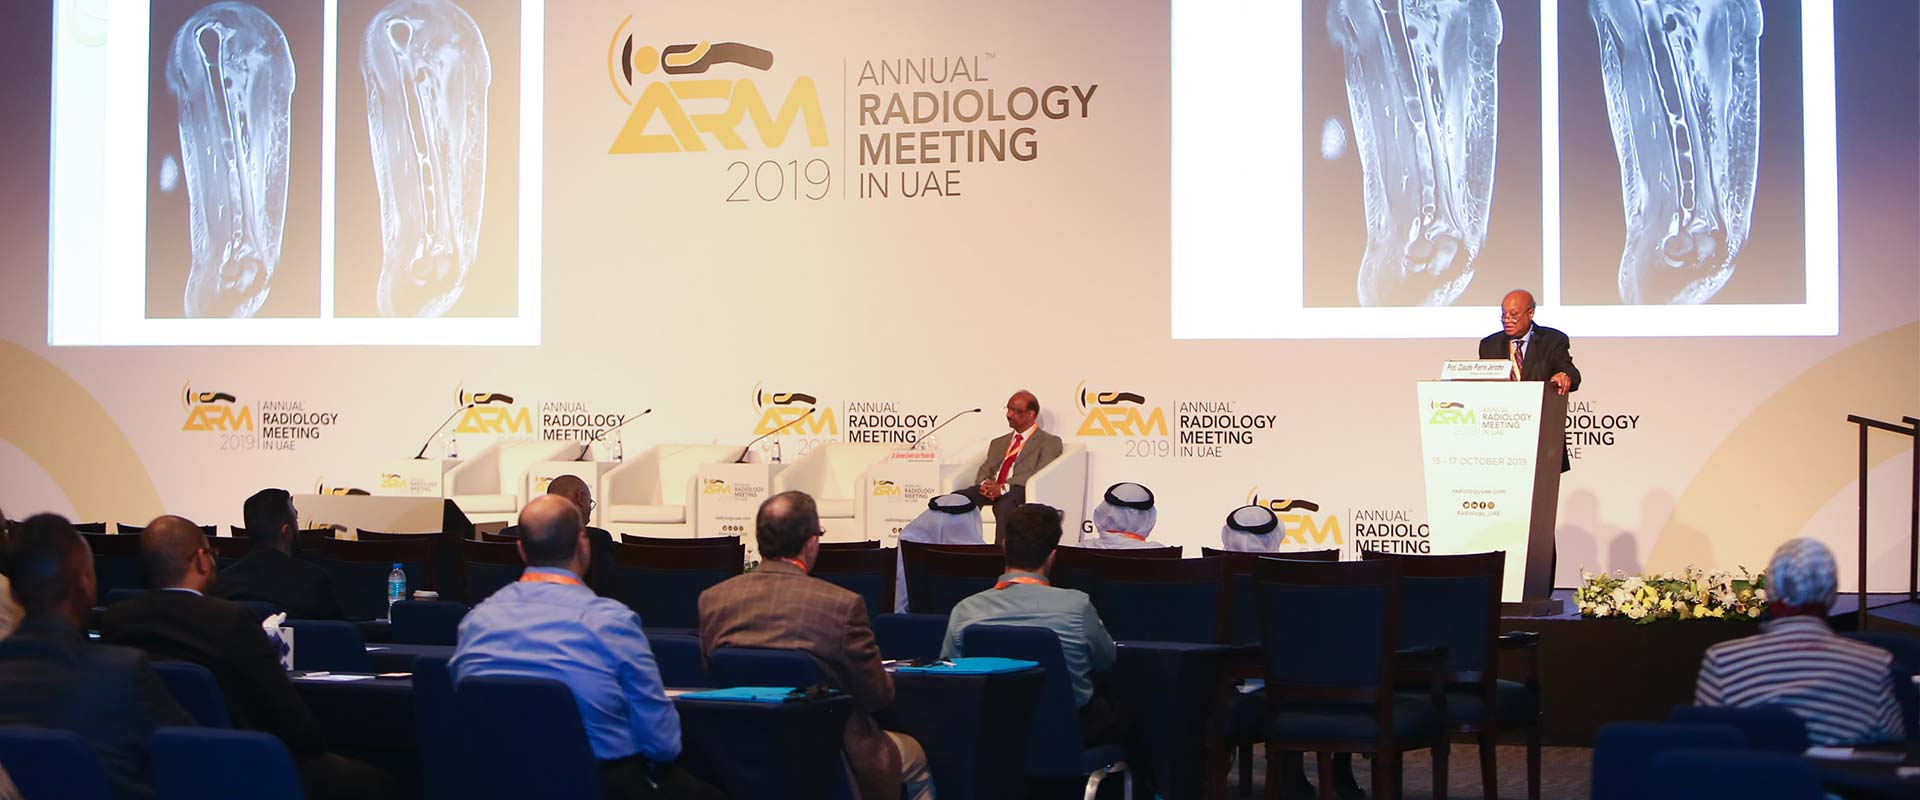 ARM: Value for Radiologists & Radiographers Alike